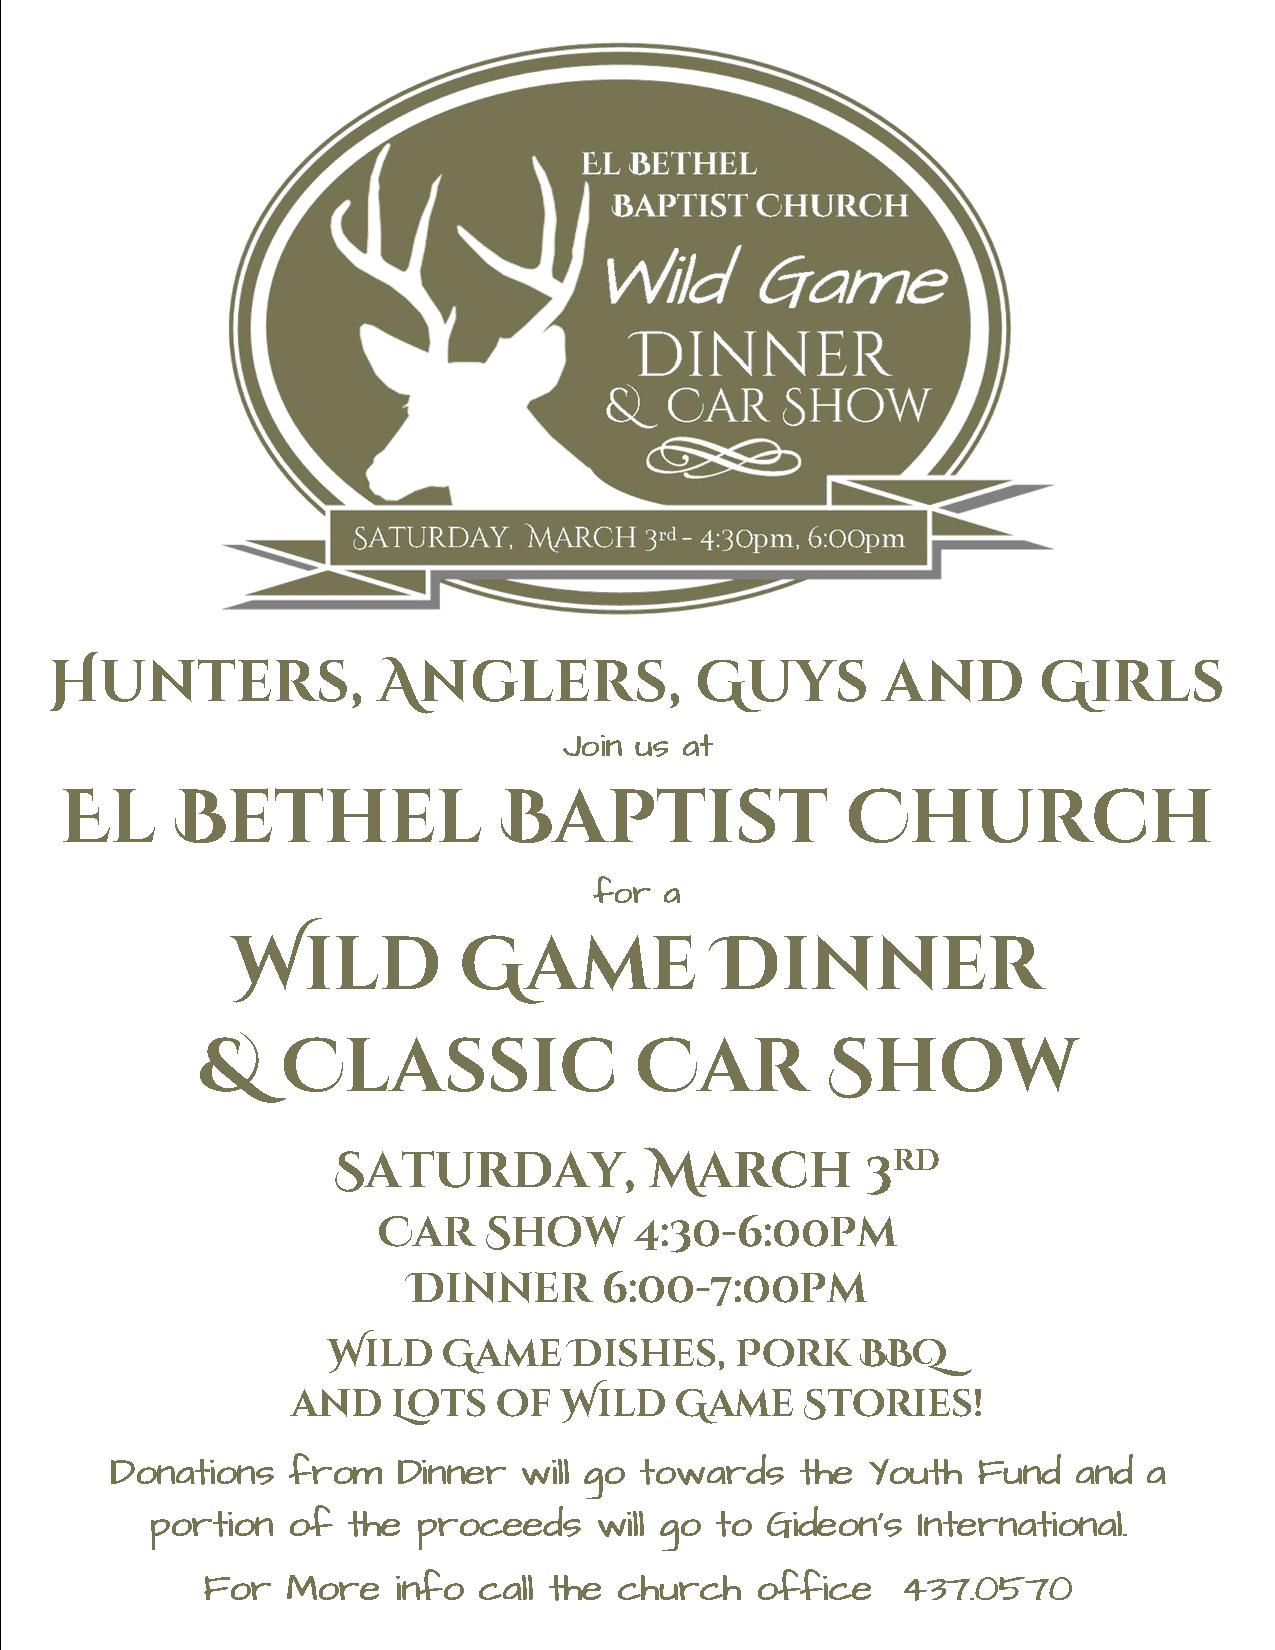 wild game dinner and car show flyer click here